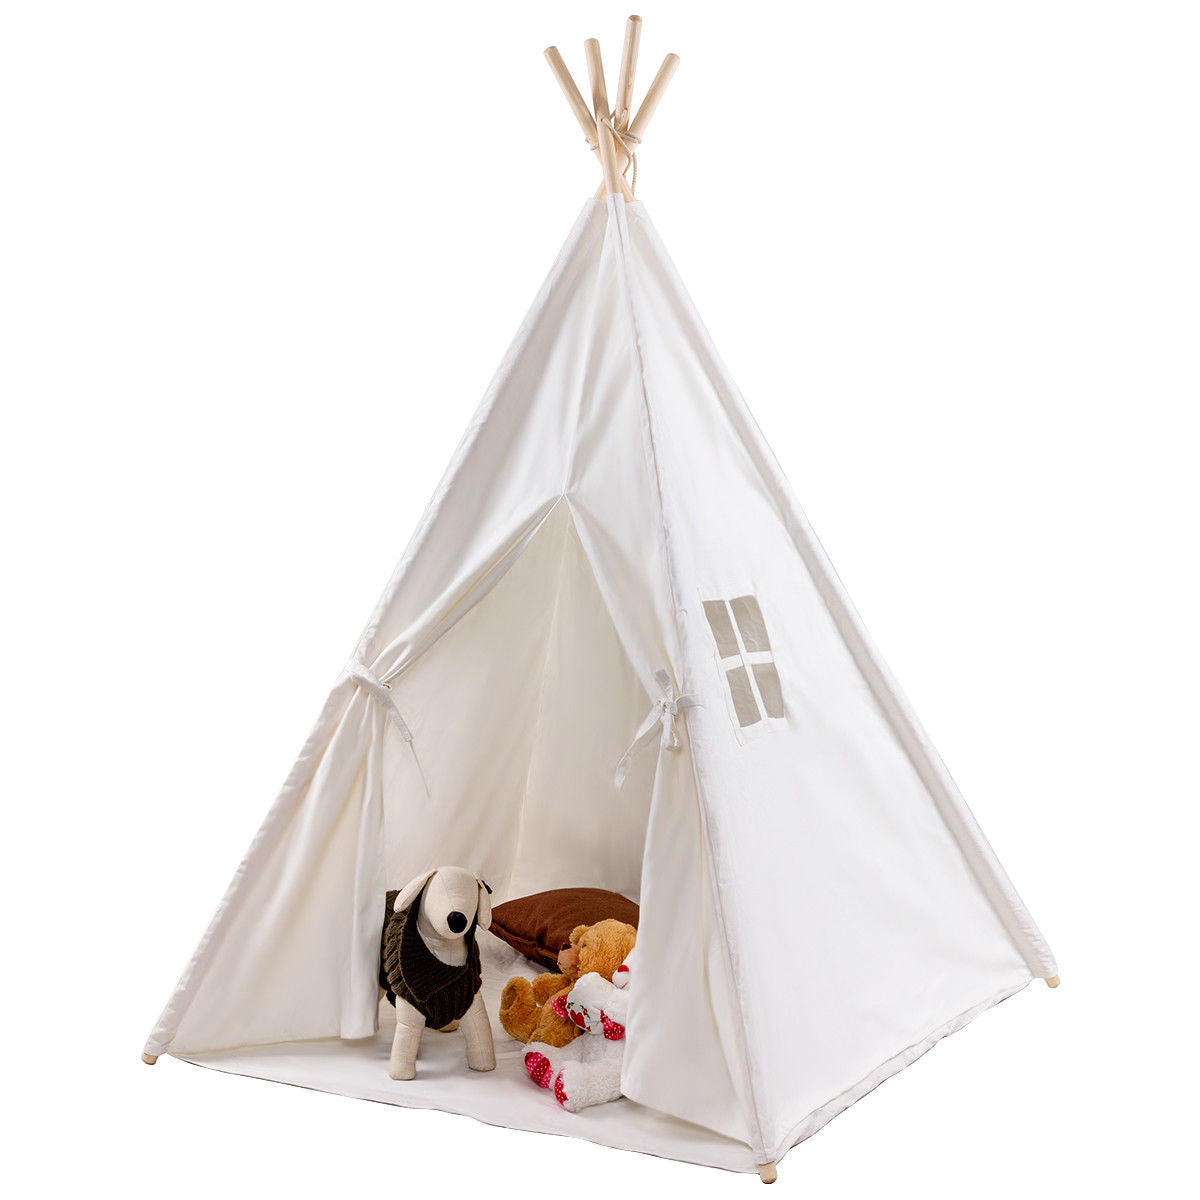 customizable white tent play teepee for kids